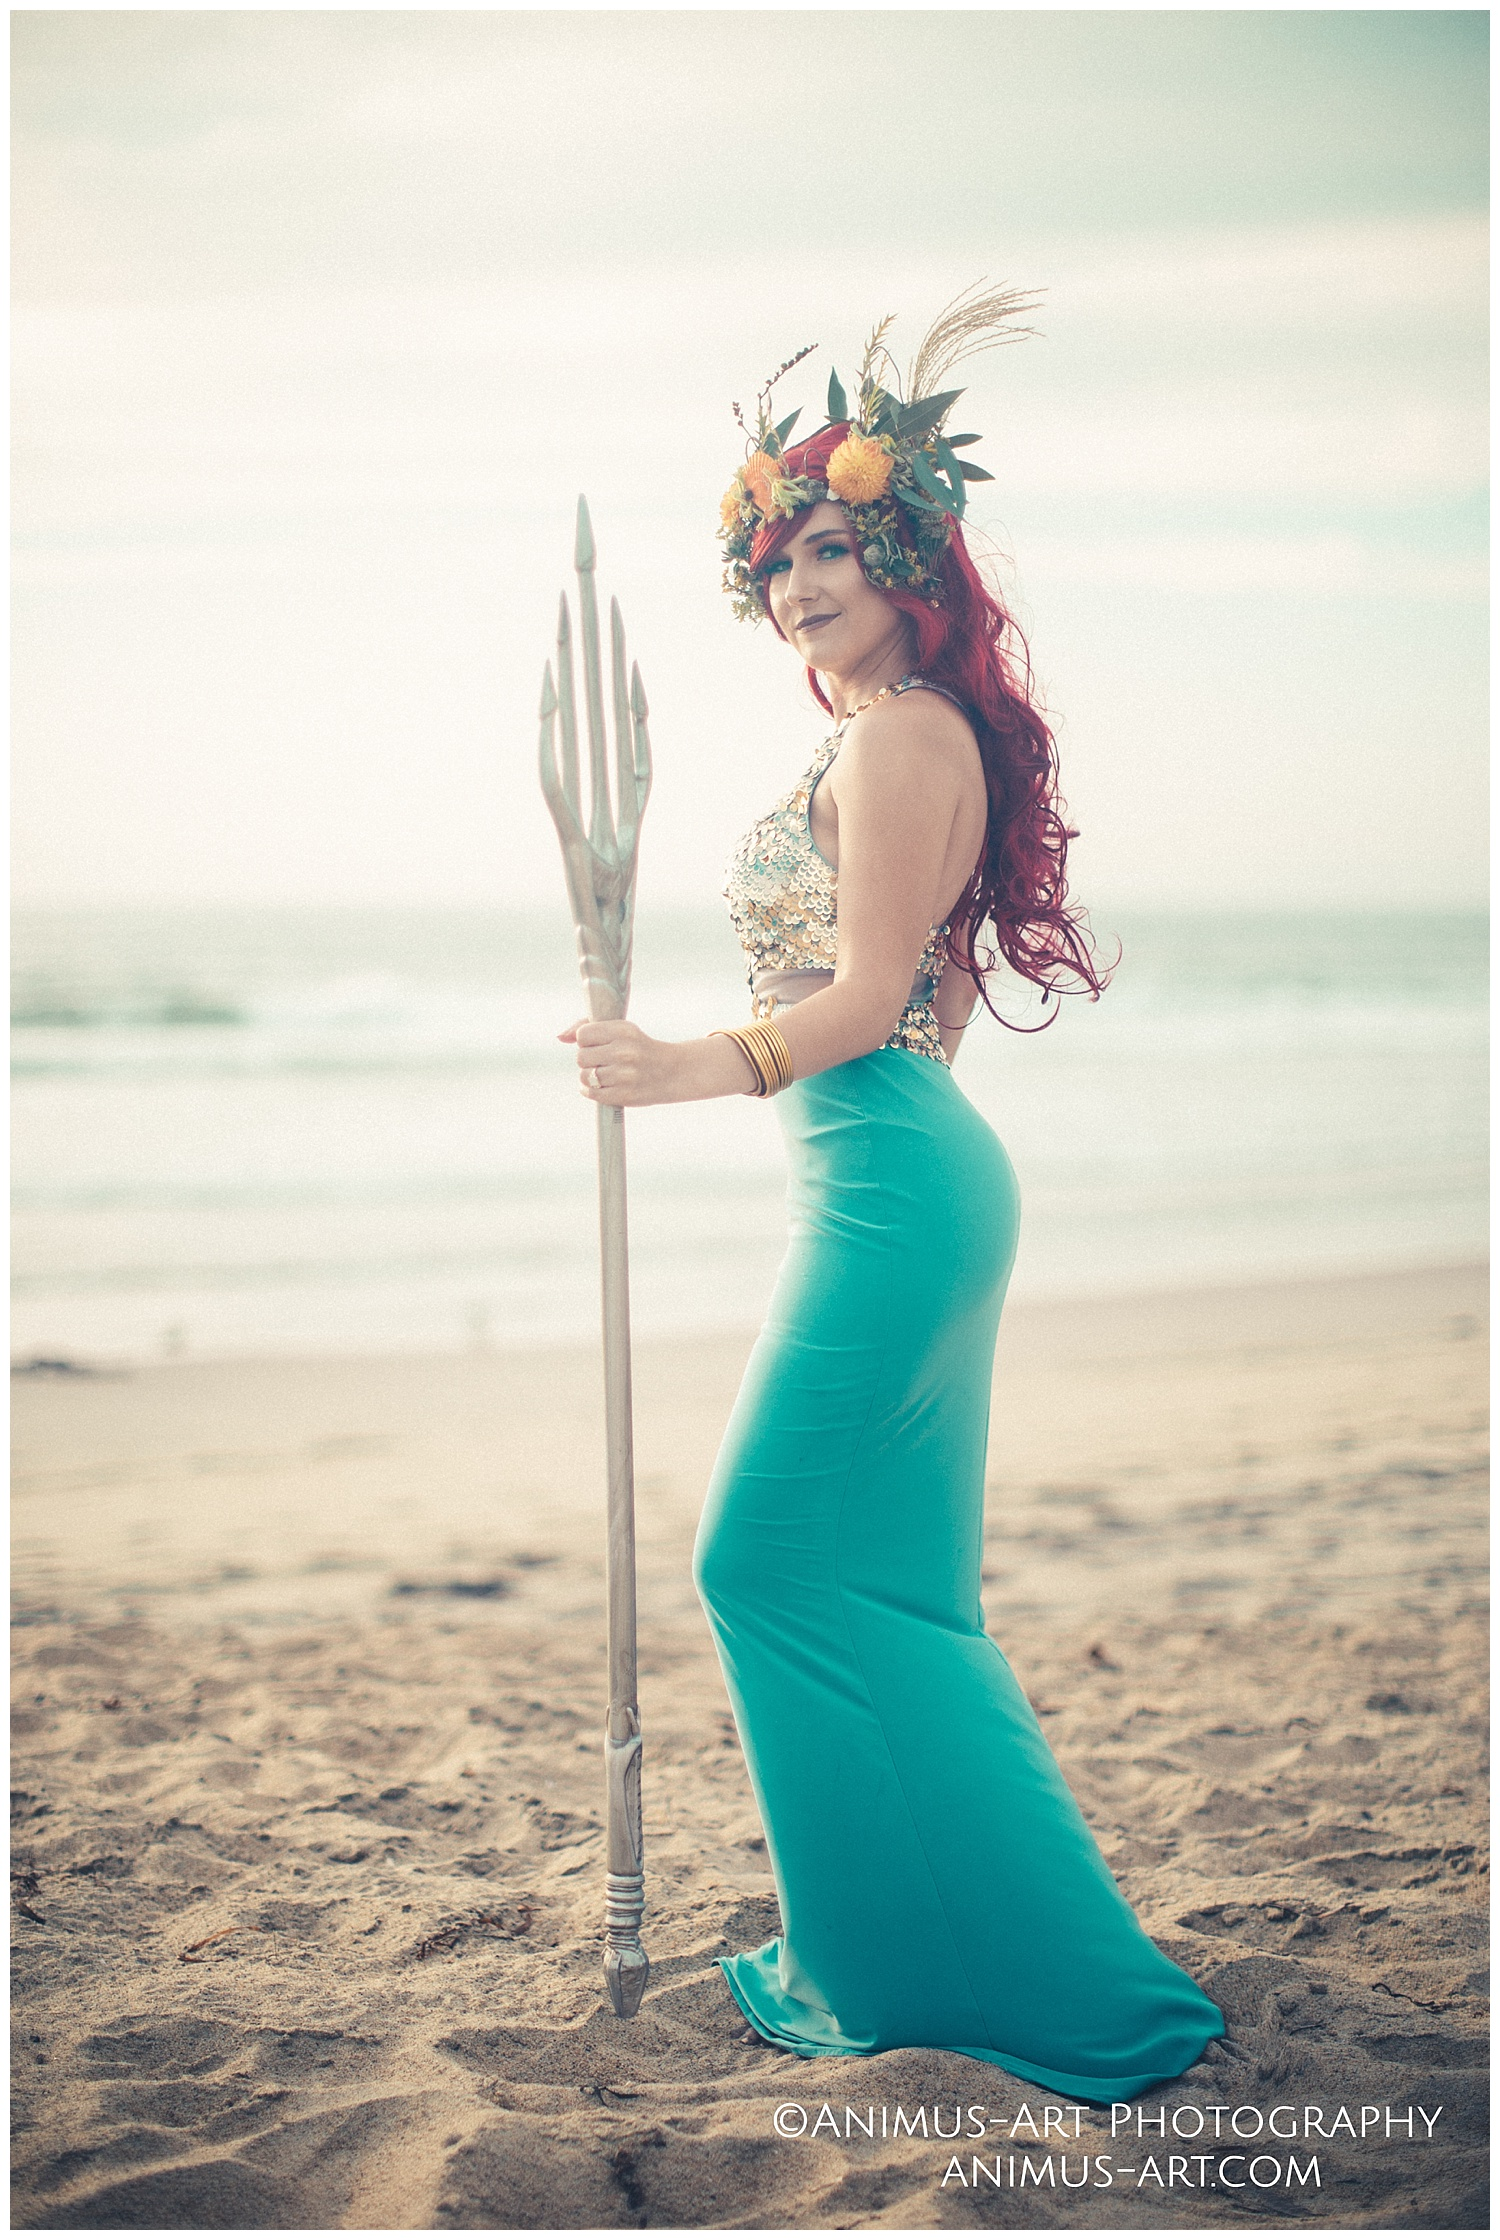 Mera with Trident and Floral Crown at the Beach.jpg